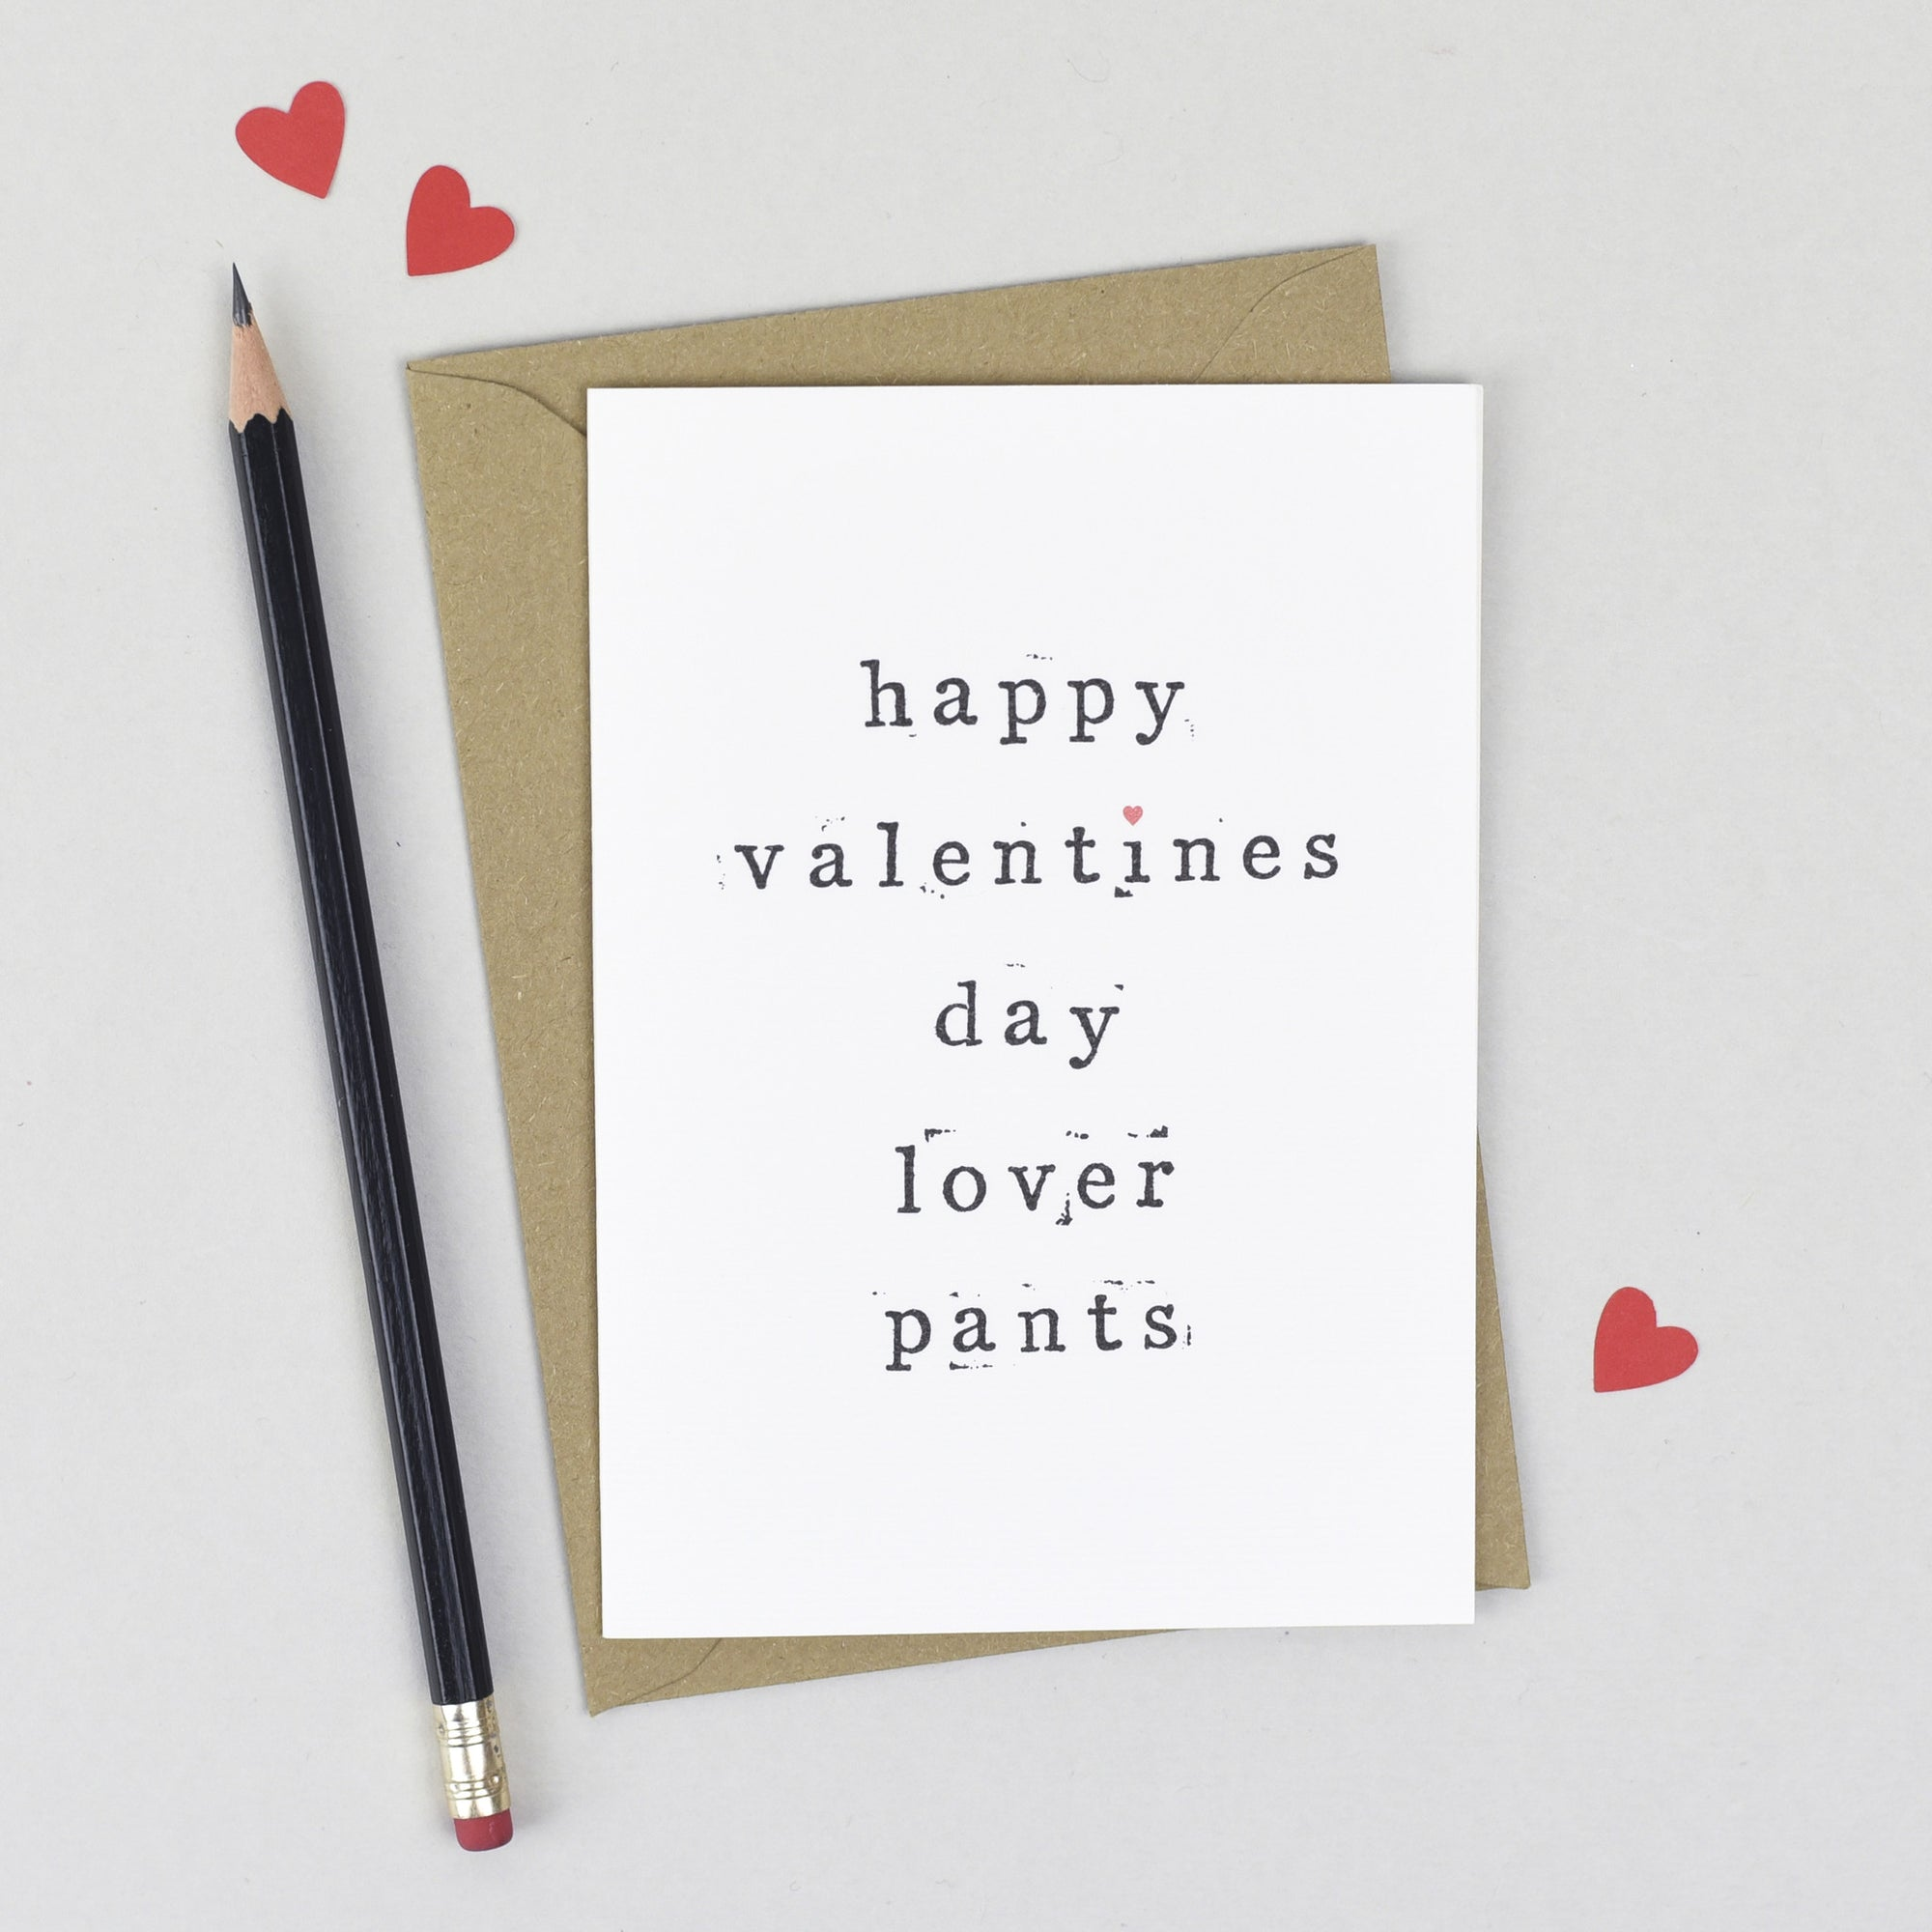 Happy Valentine's Day Lover Pants Card Card - The Two Wagtails